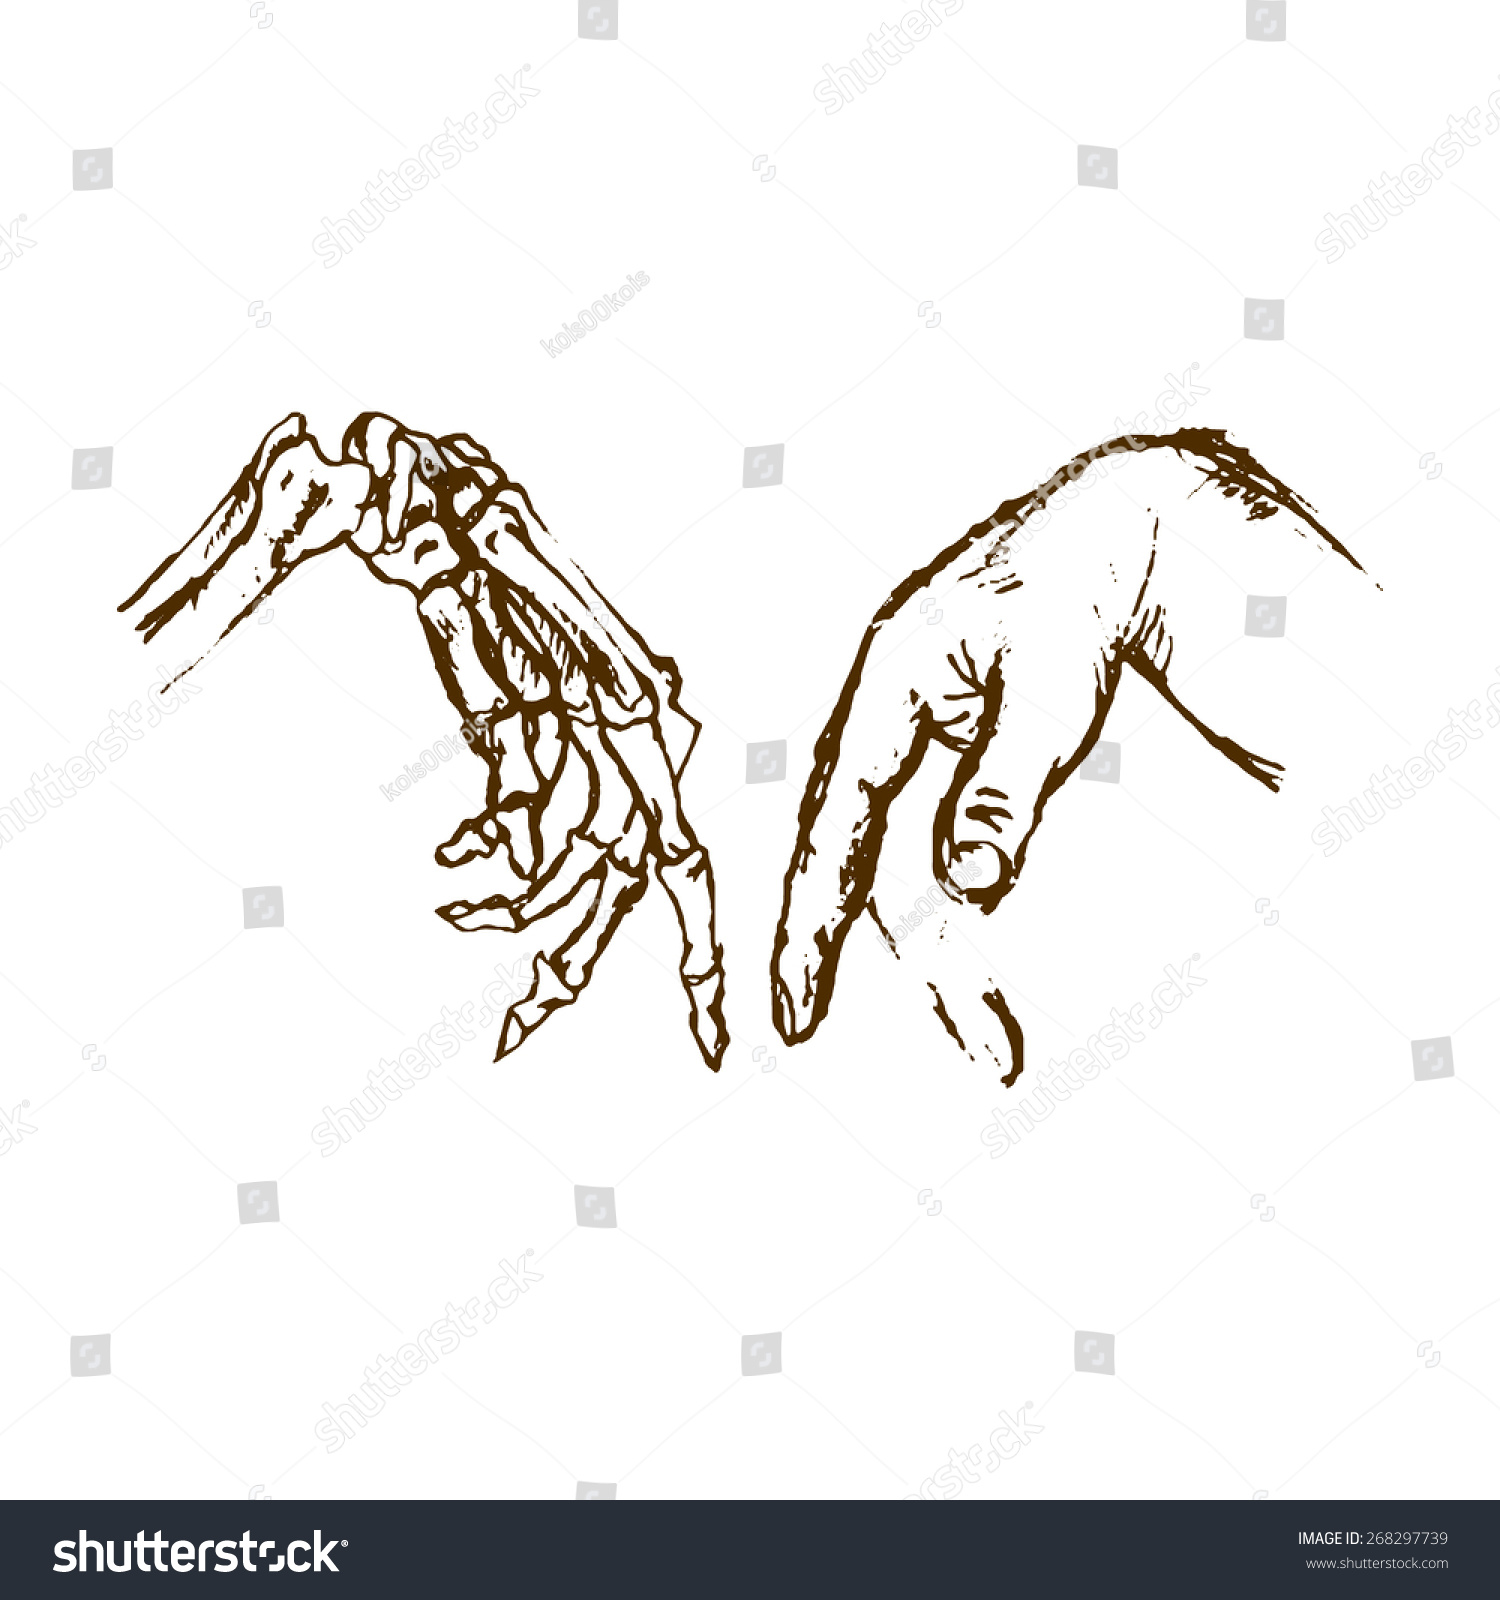 Human Anatomy Hand Skeleton Hand Bones Stock Vector Royalty Free